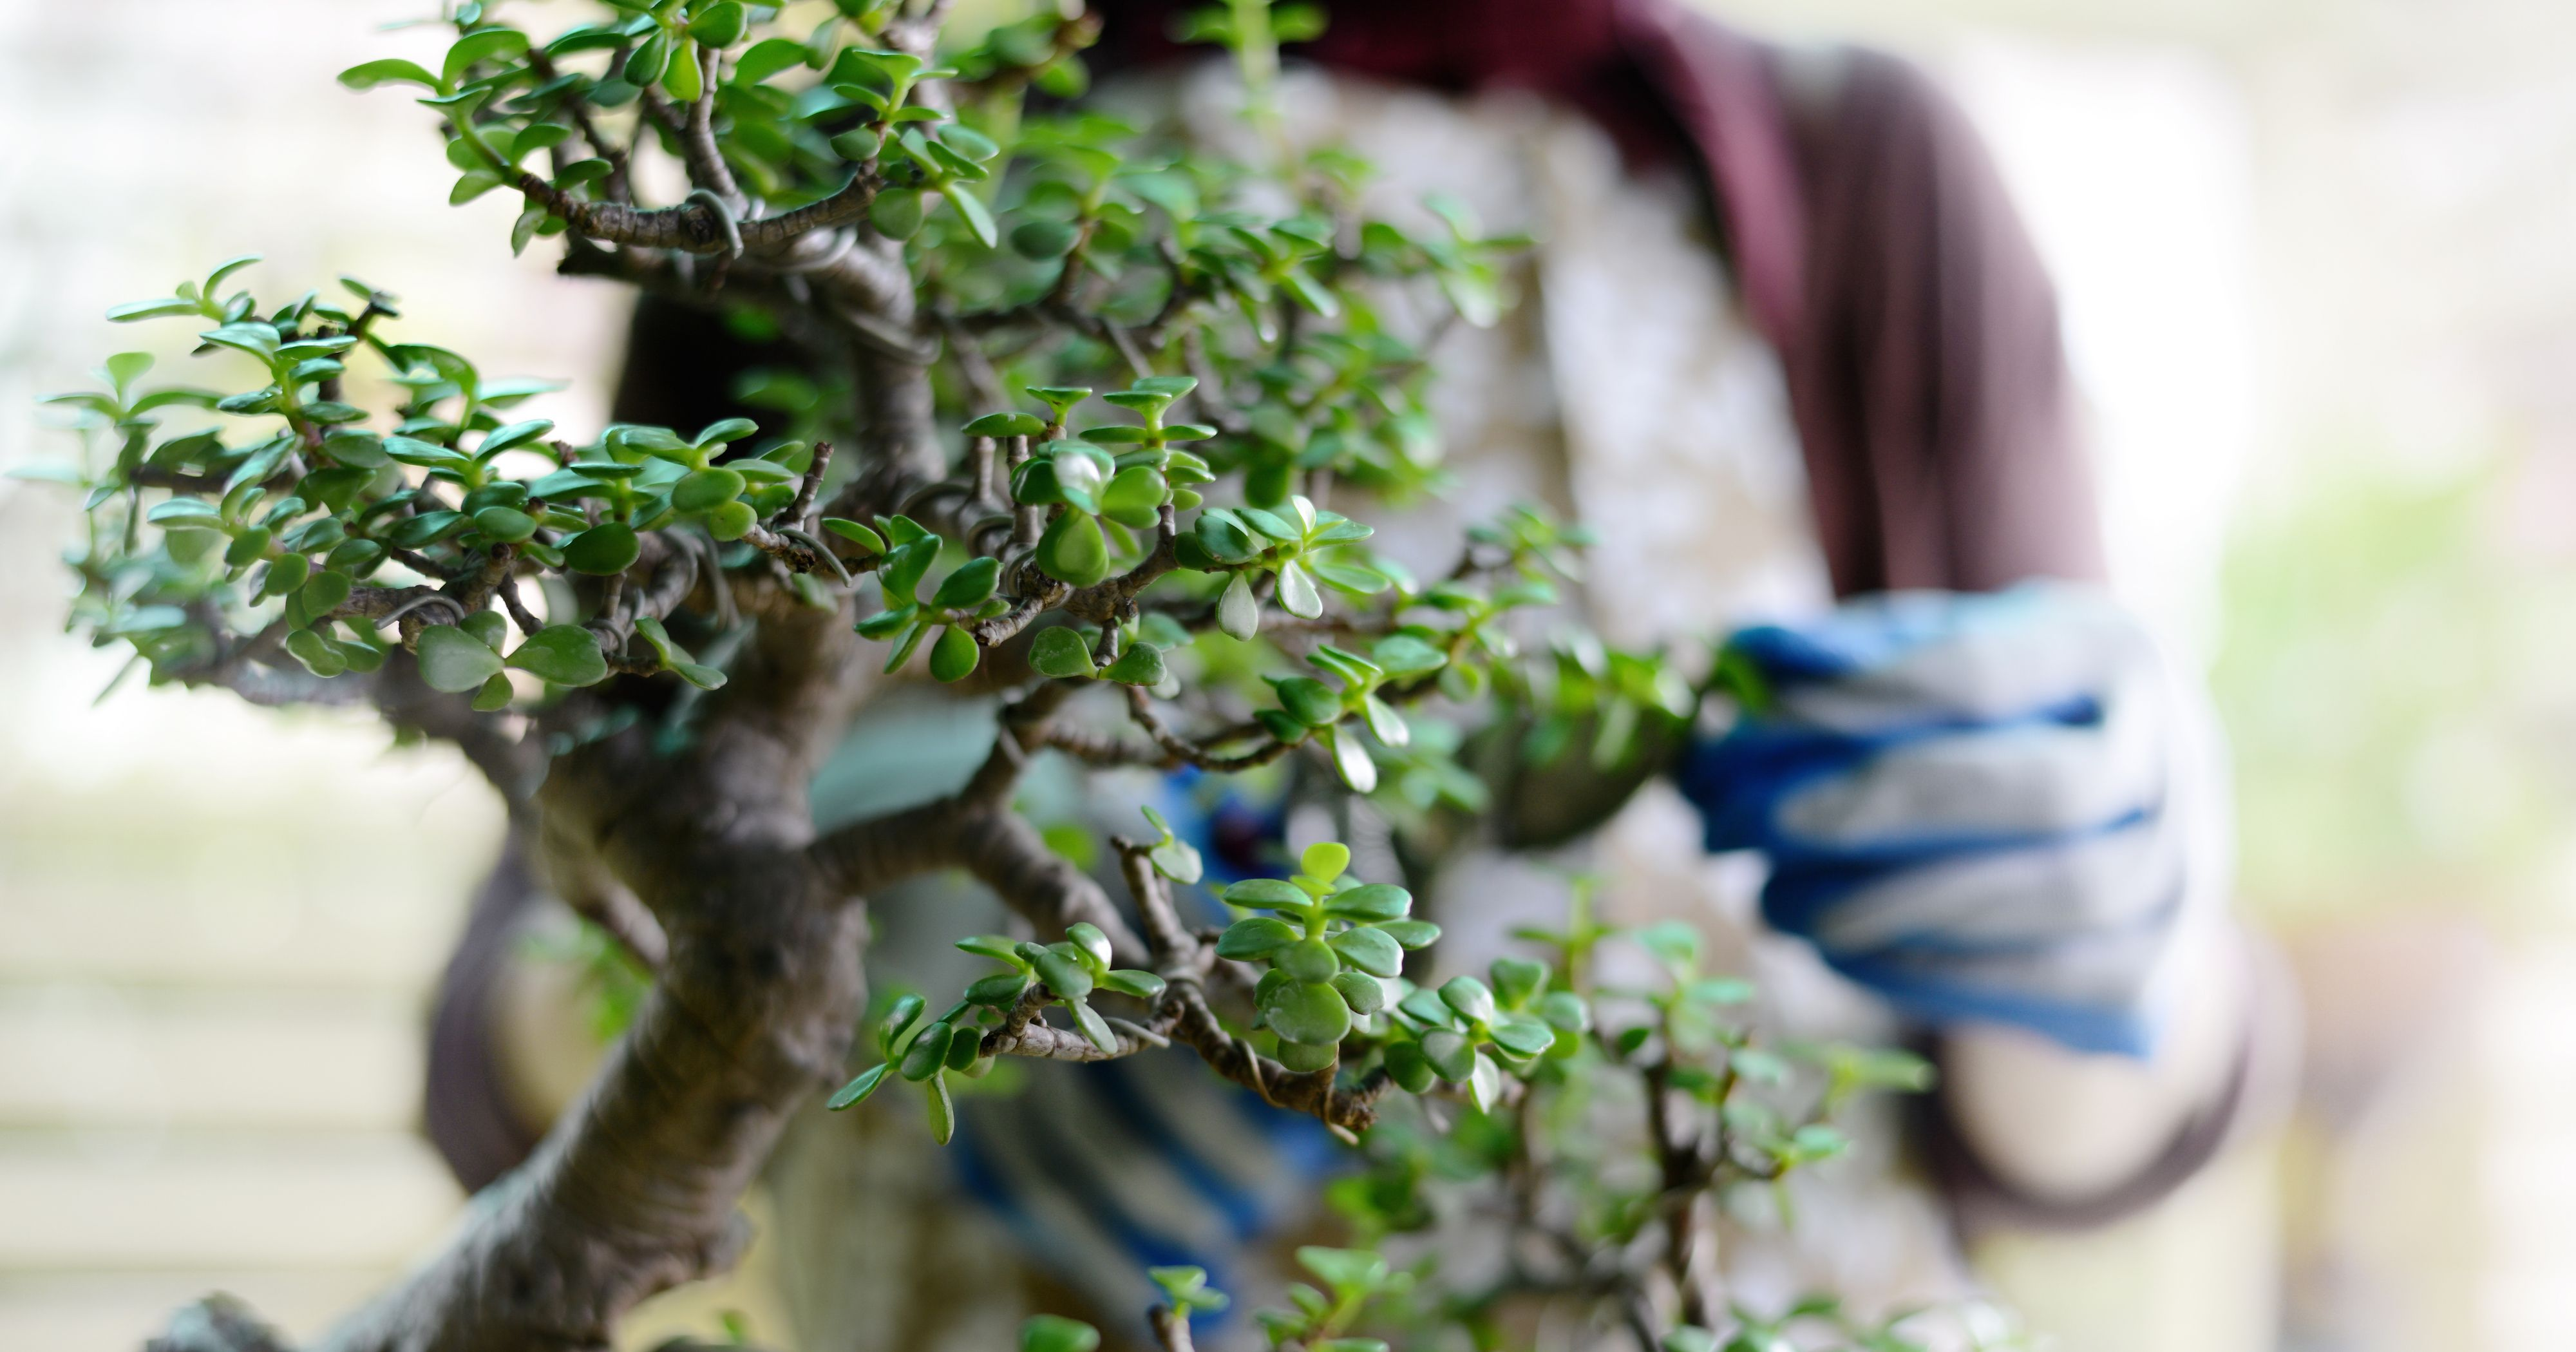 Aqua Bonsai Is The Coolest Gardening Trend Right Now Underwater Plants And Hydroponics